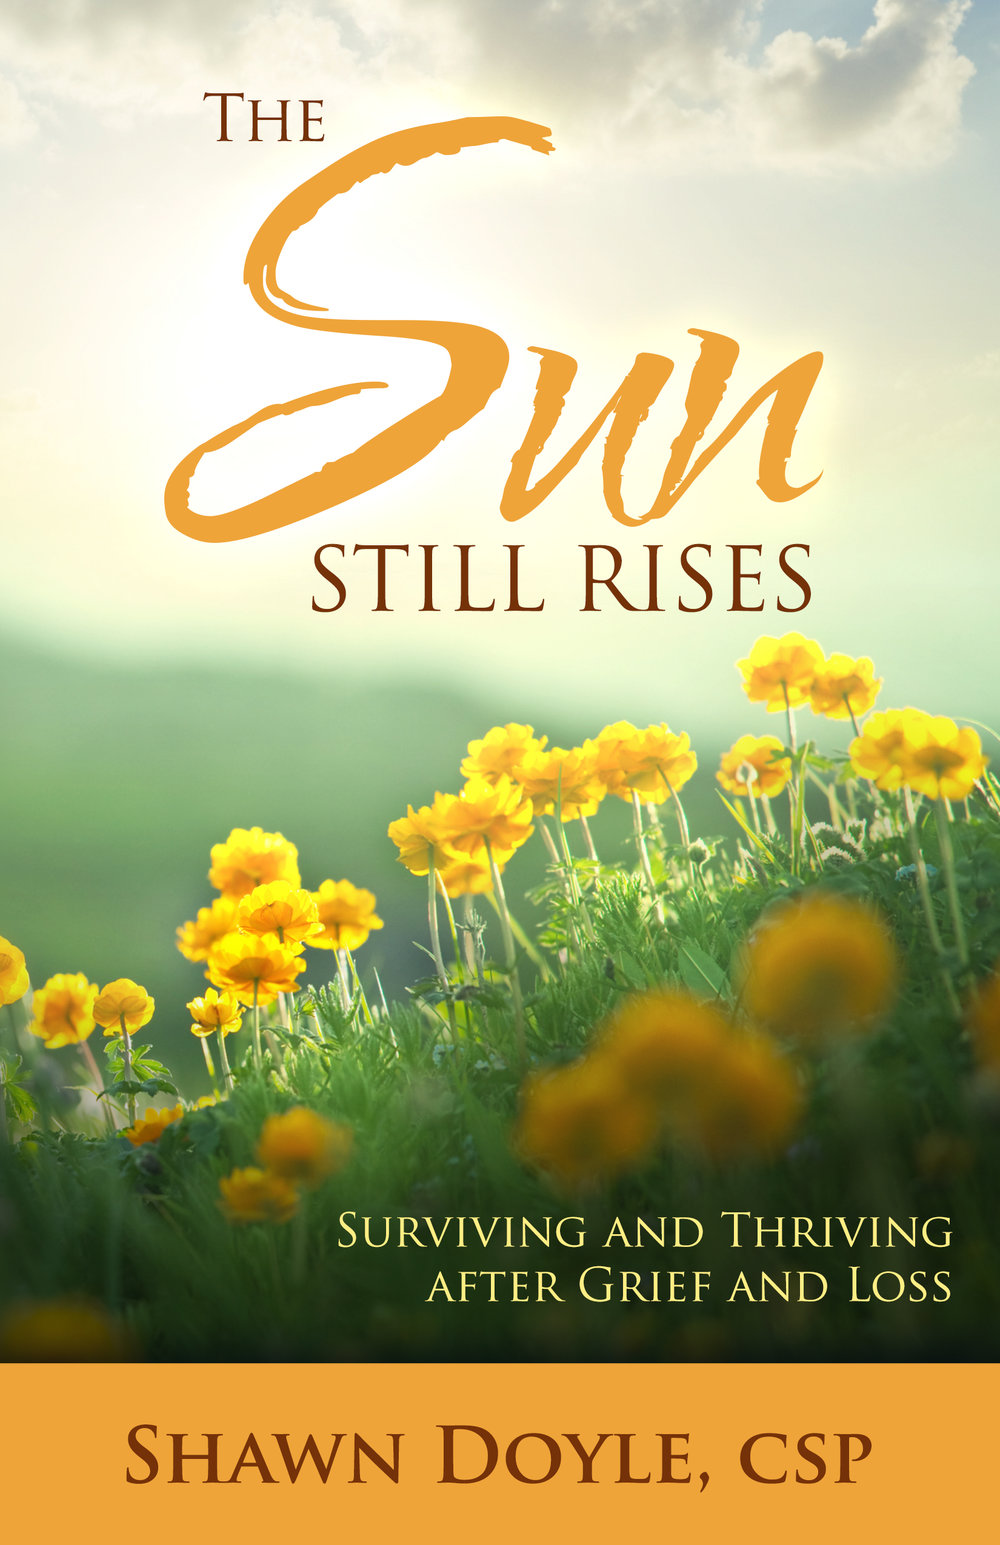 The Sun Still Rises  - By shawn doyle csp